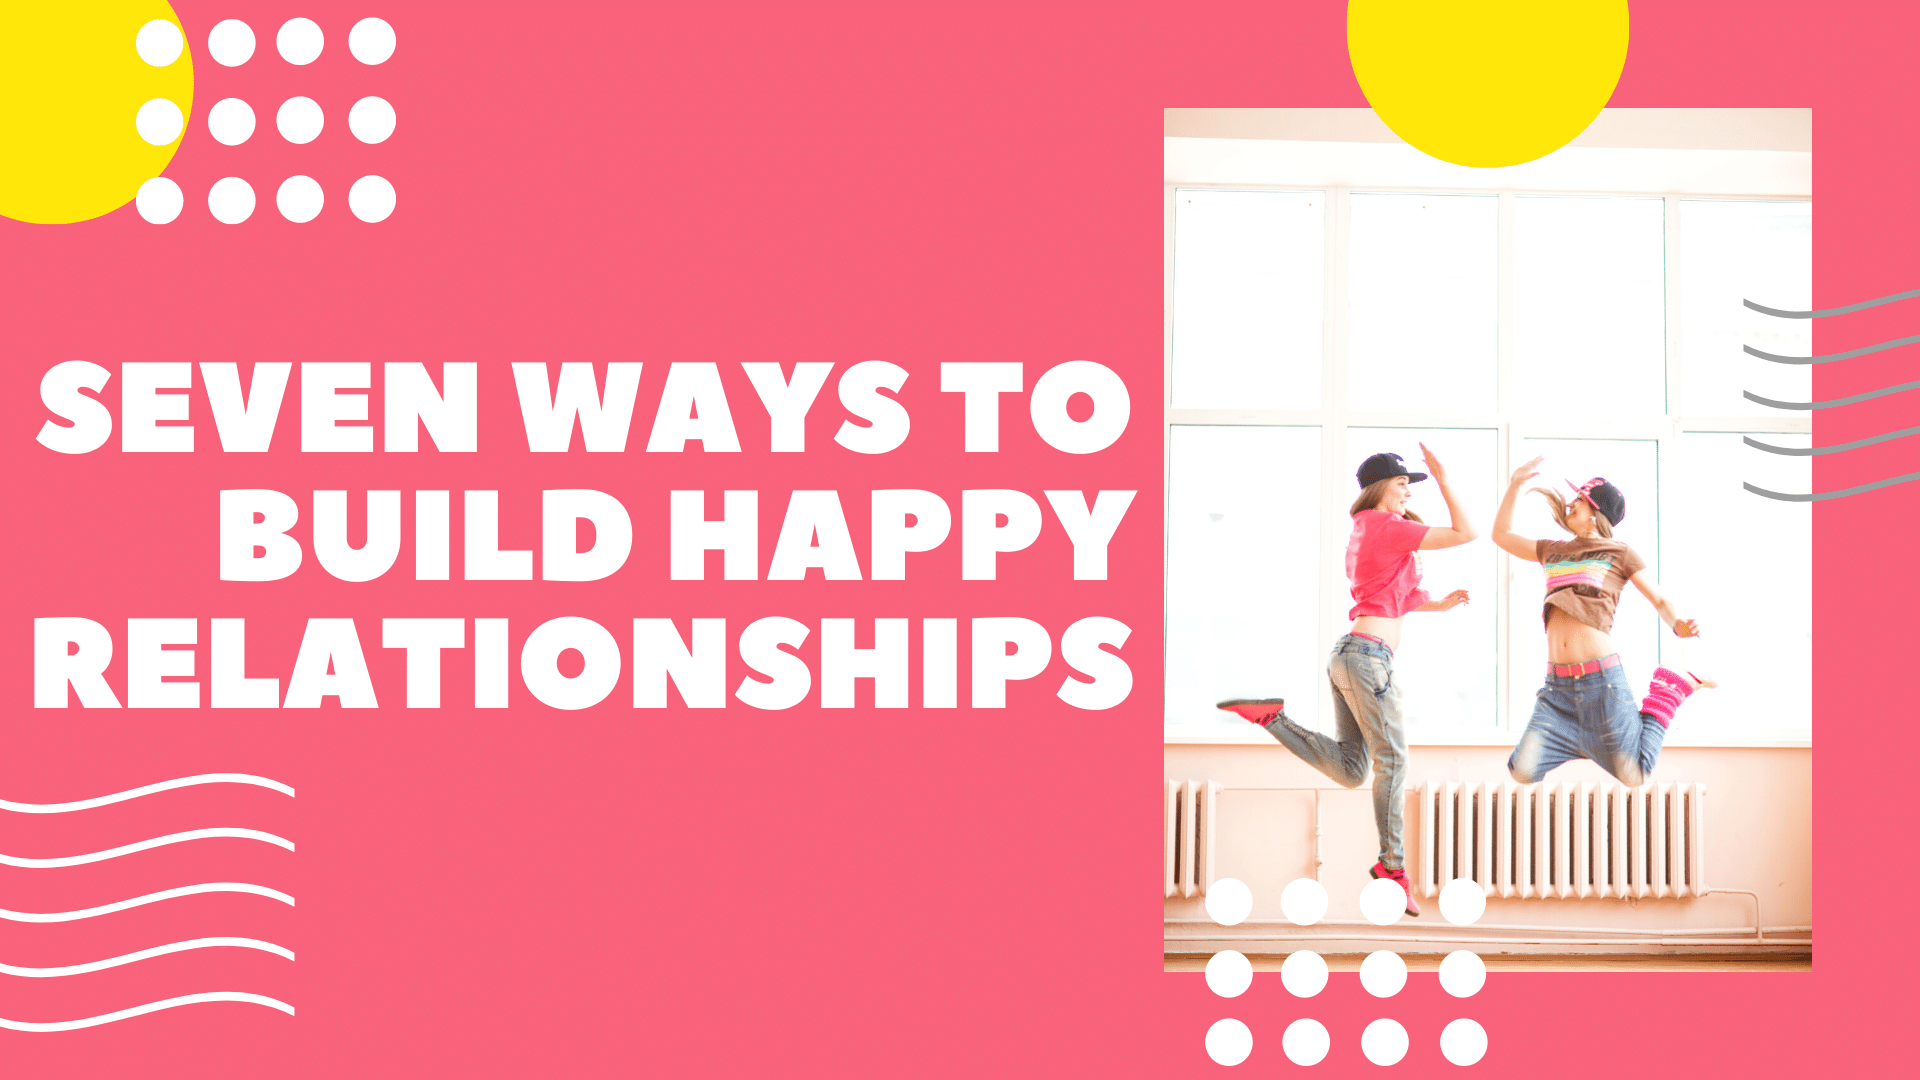 Video Channel Seven Ways to Build Happy Relationships